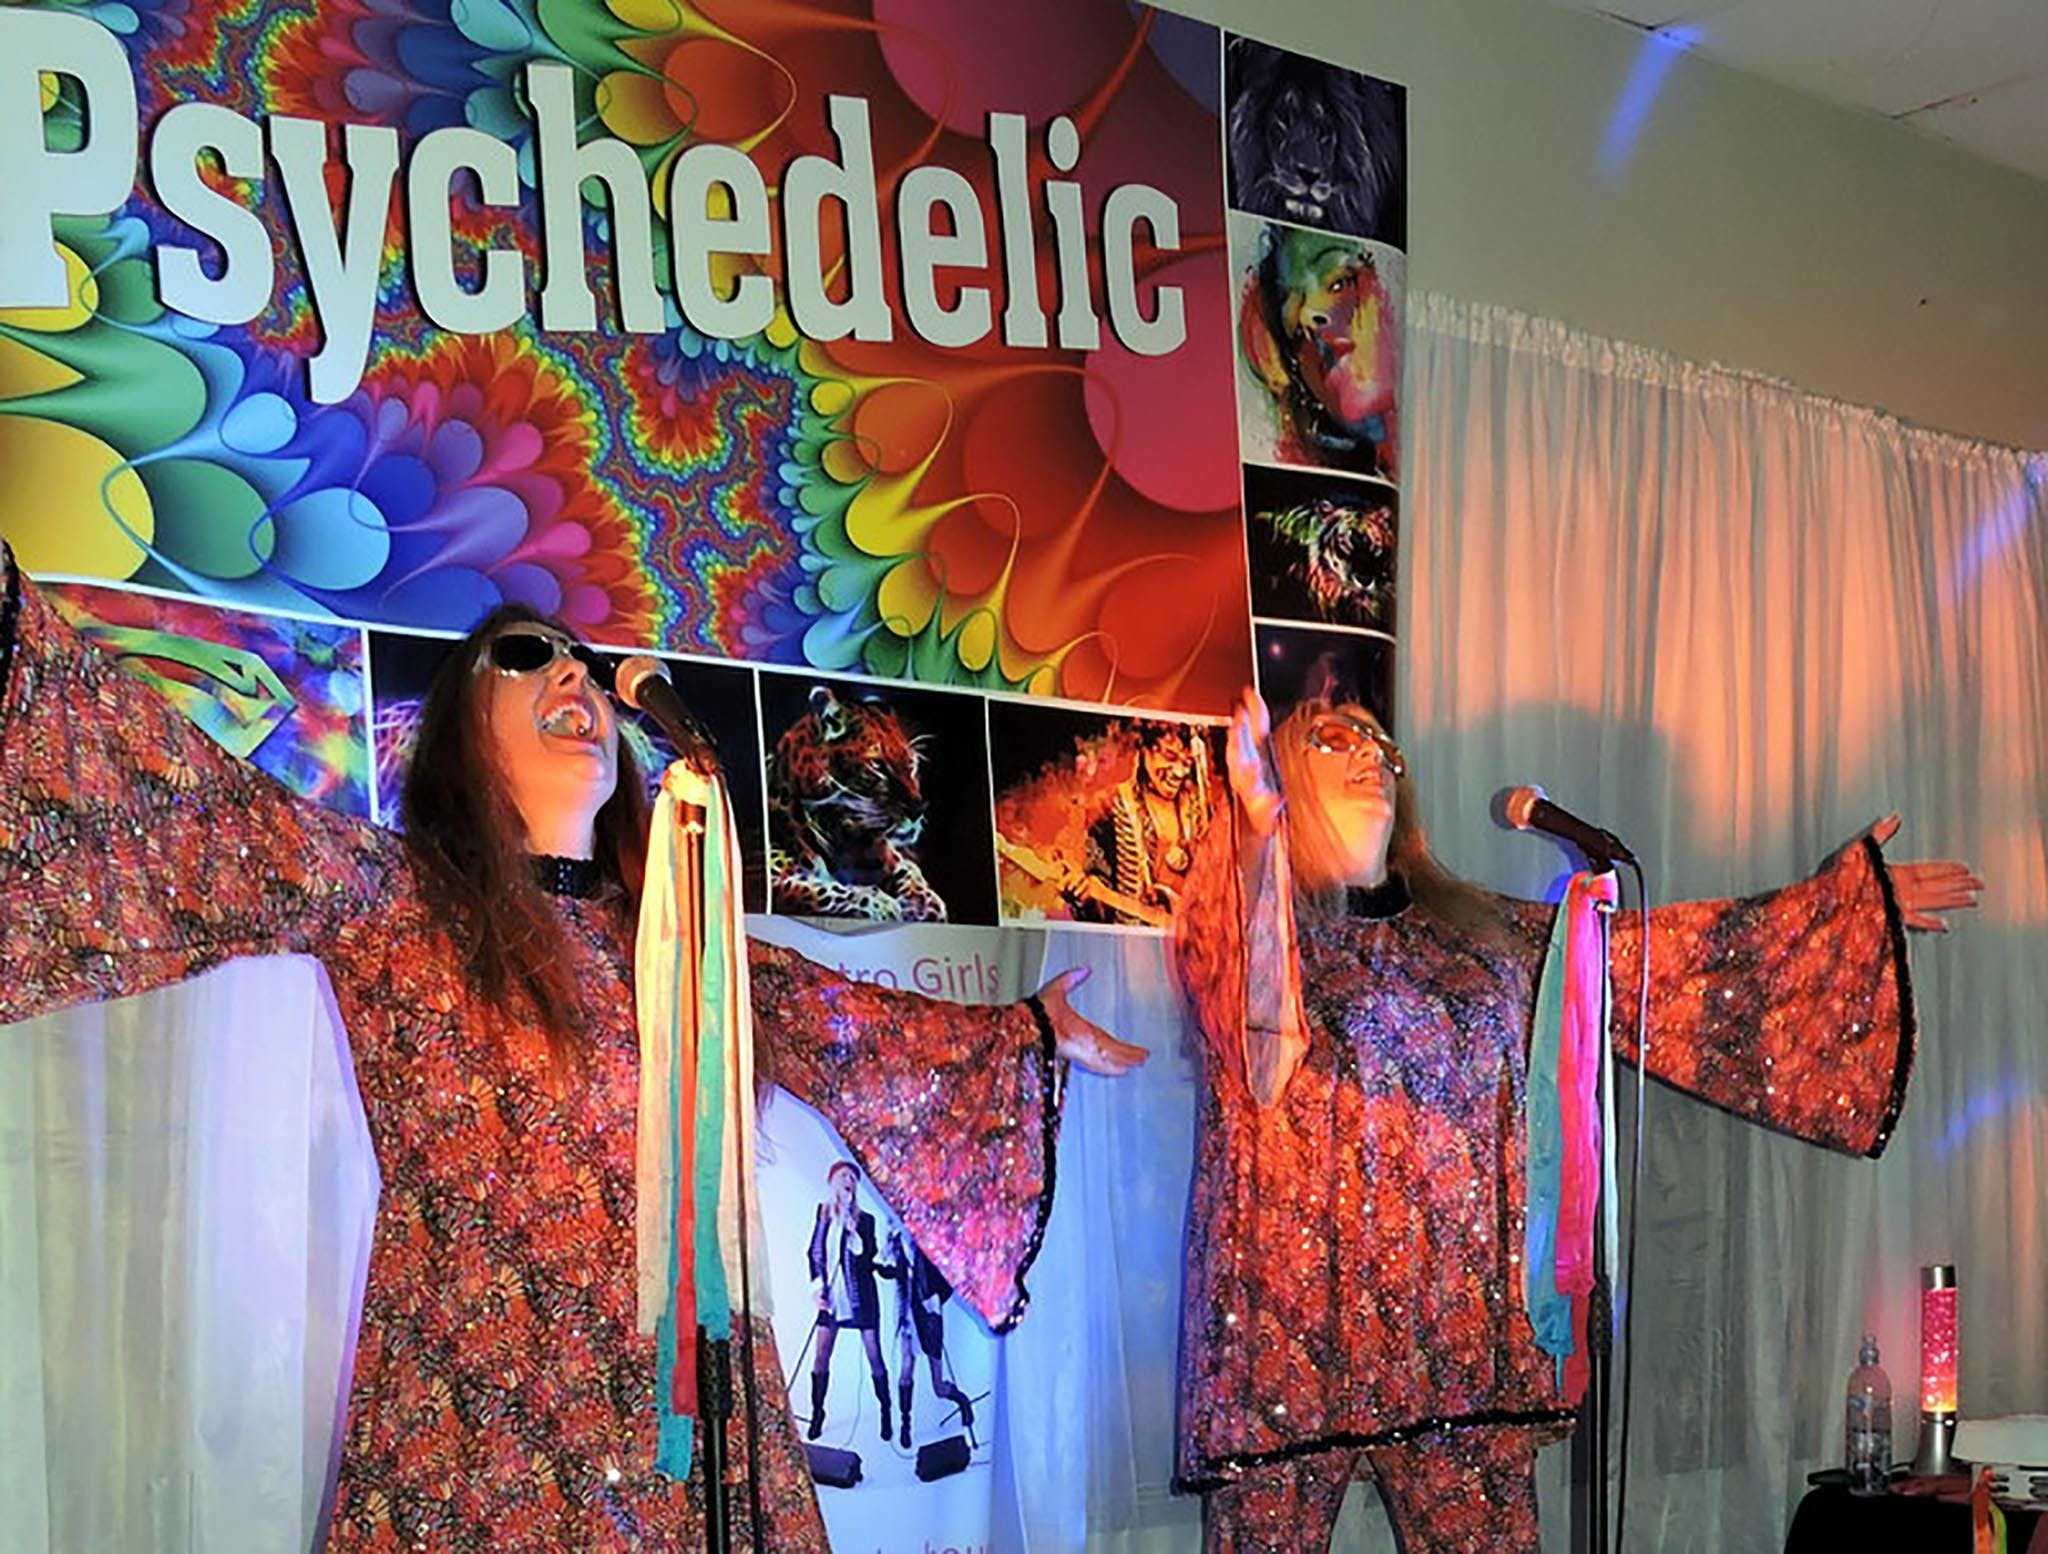 Psychedelic 70s Show The Retro Girls Logo and Images